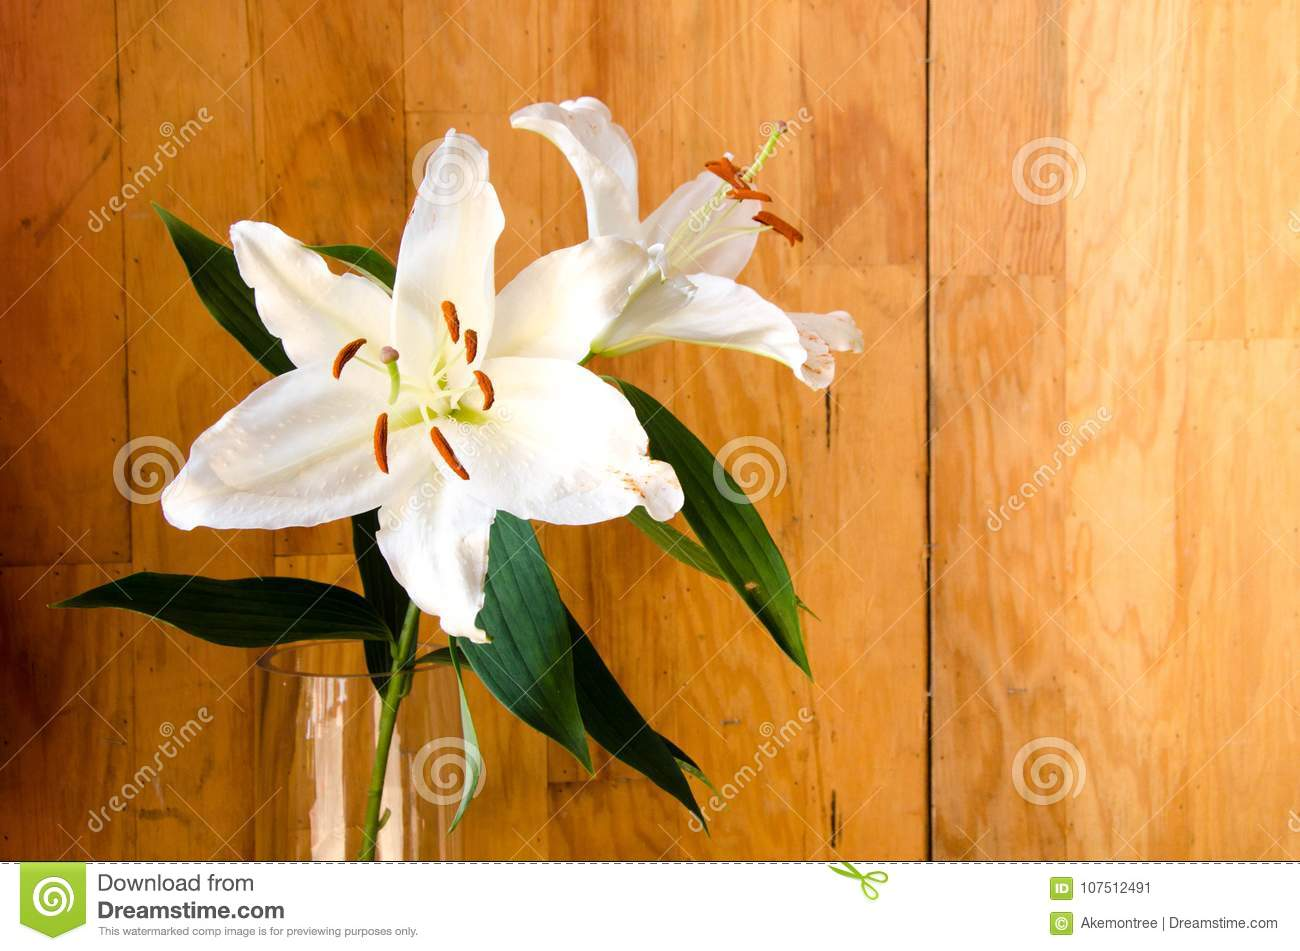 White lilly flower in transparent glass on wooden background stock download white lilly flower in transparent glass on wooden background stock image image of bunch izmirmasajfo